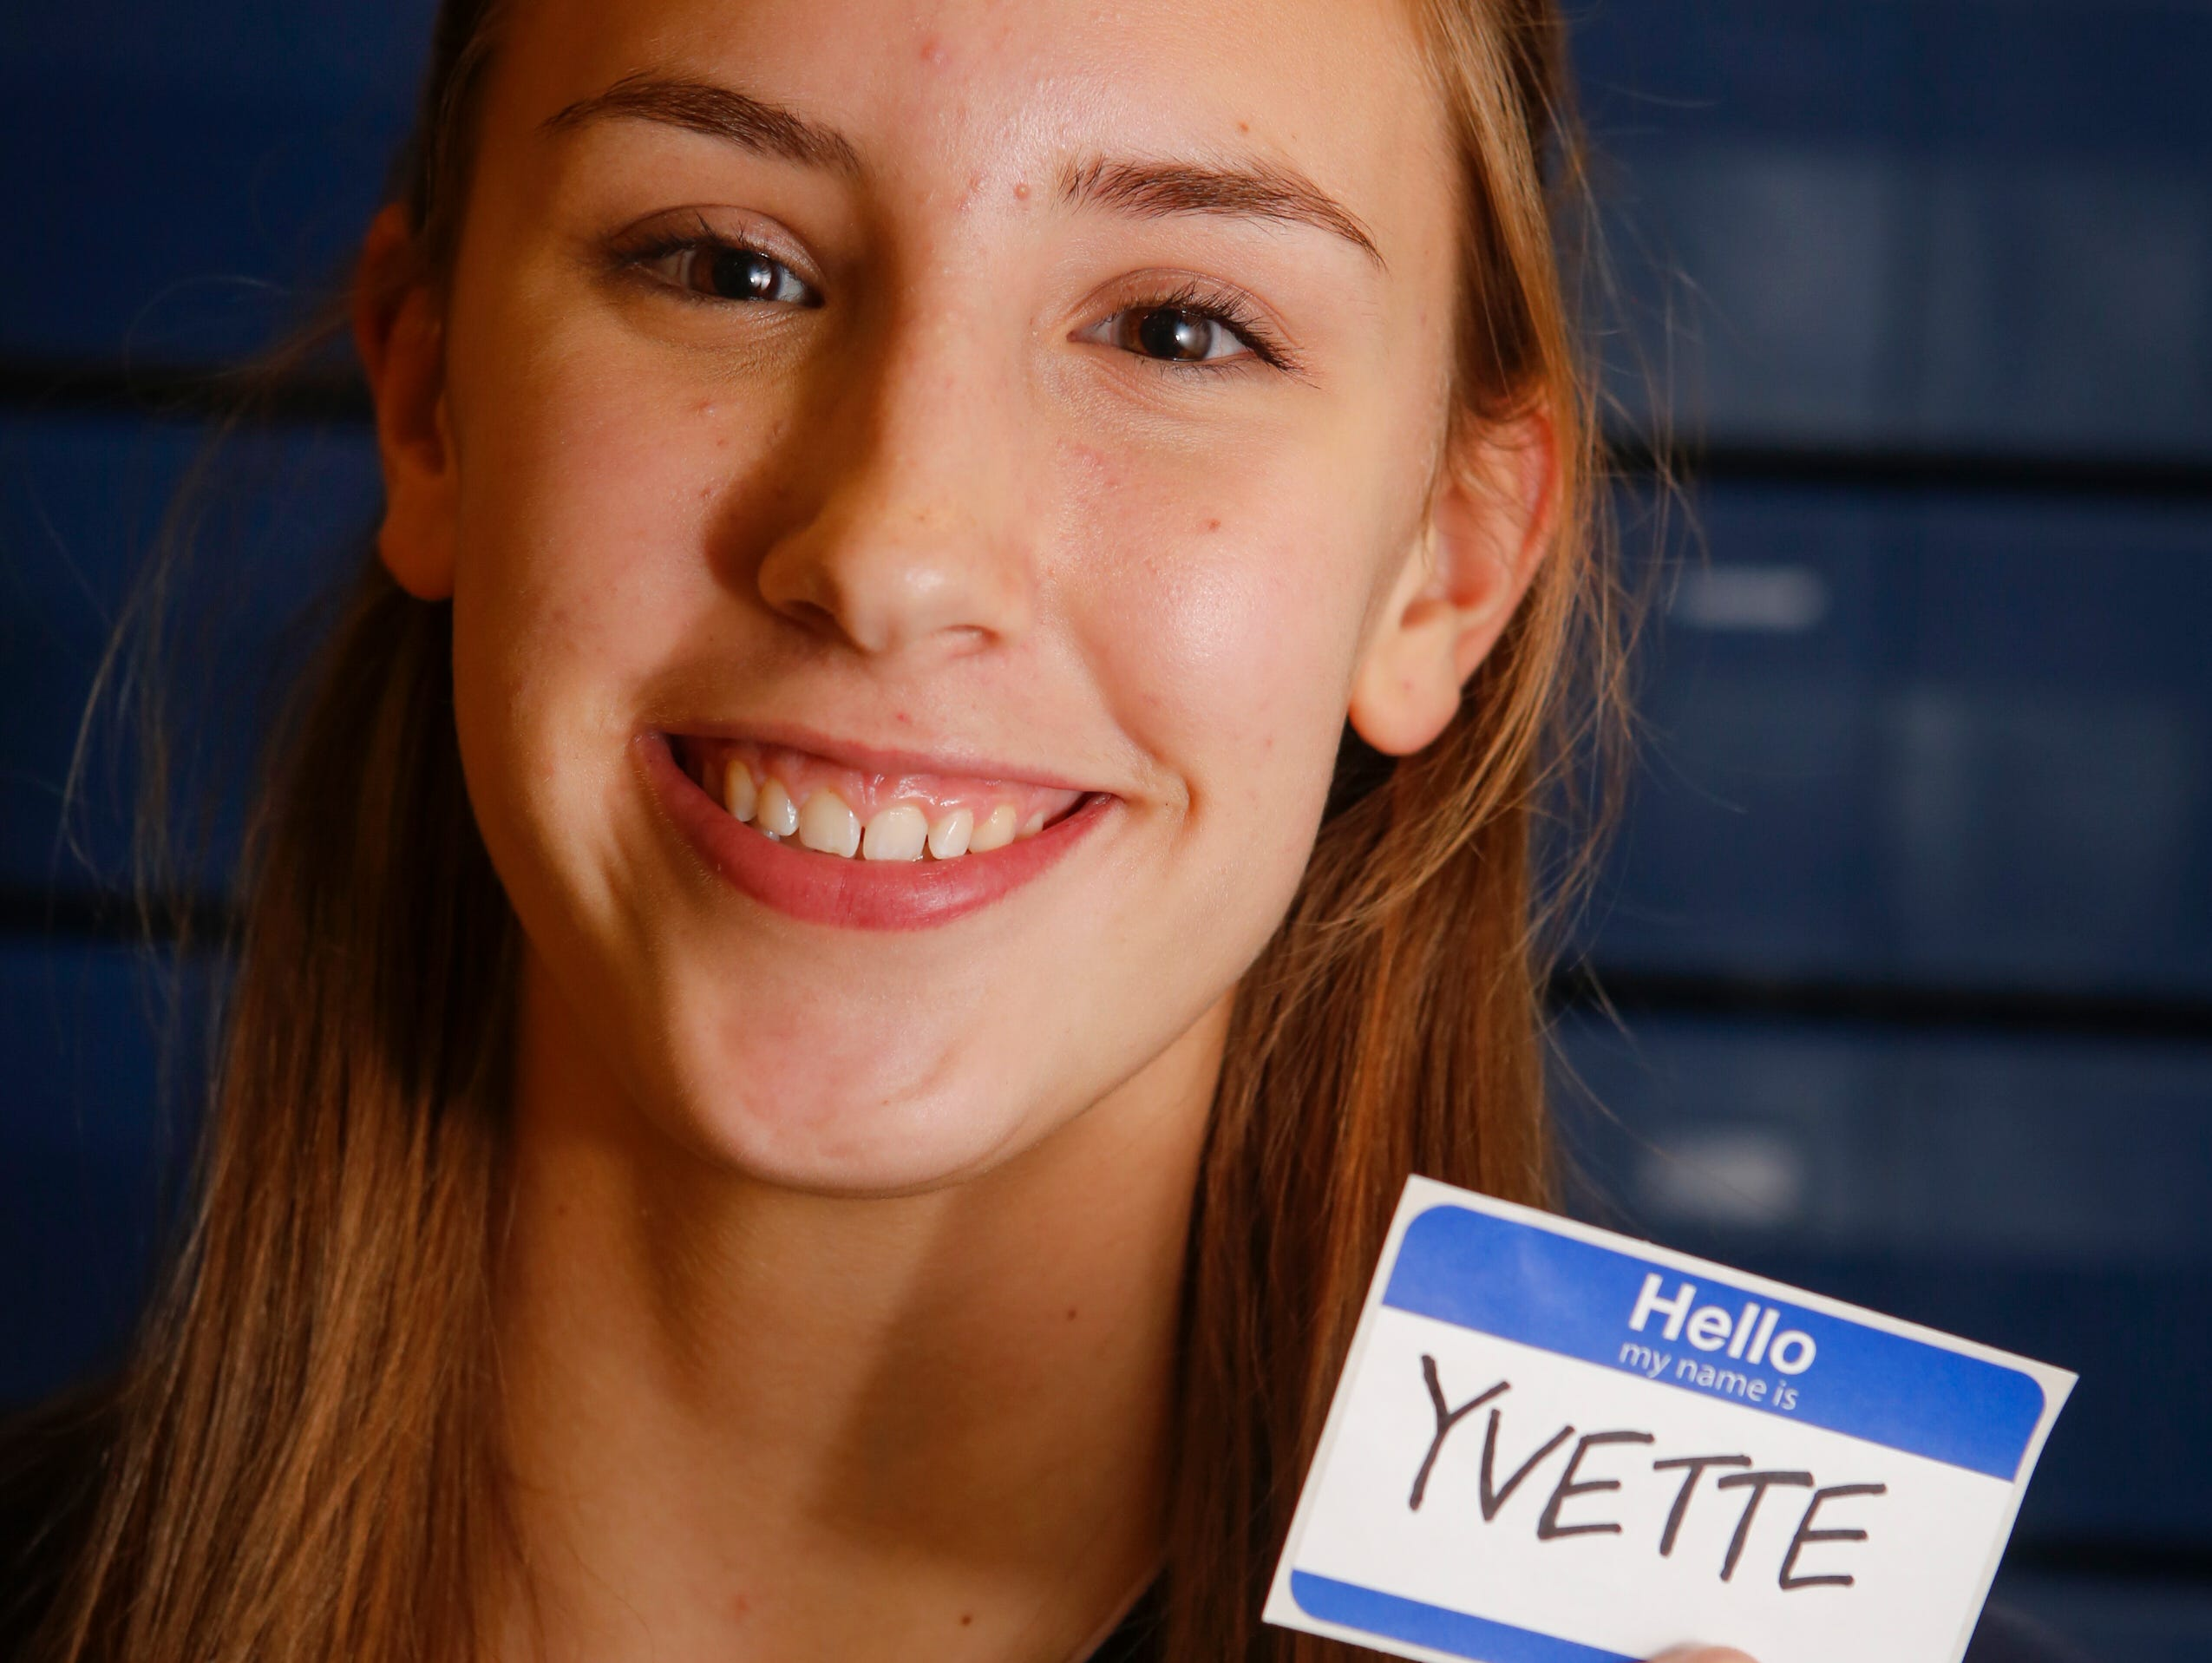 Walter Panas High School Volleyball Player of the Year Yvette Burescu at the school on Nov. 30, 2015.